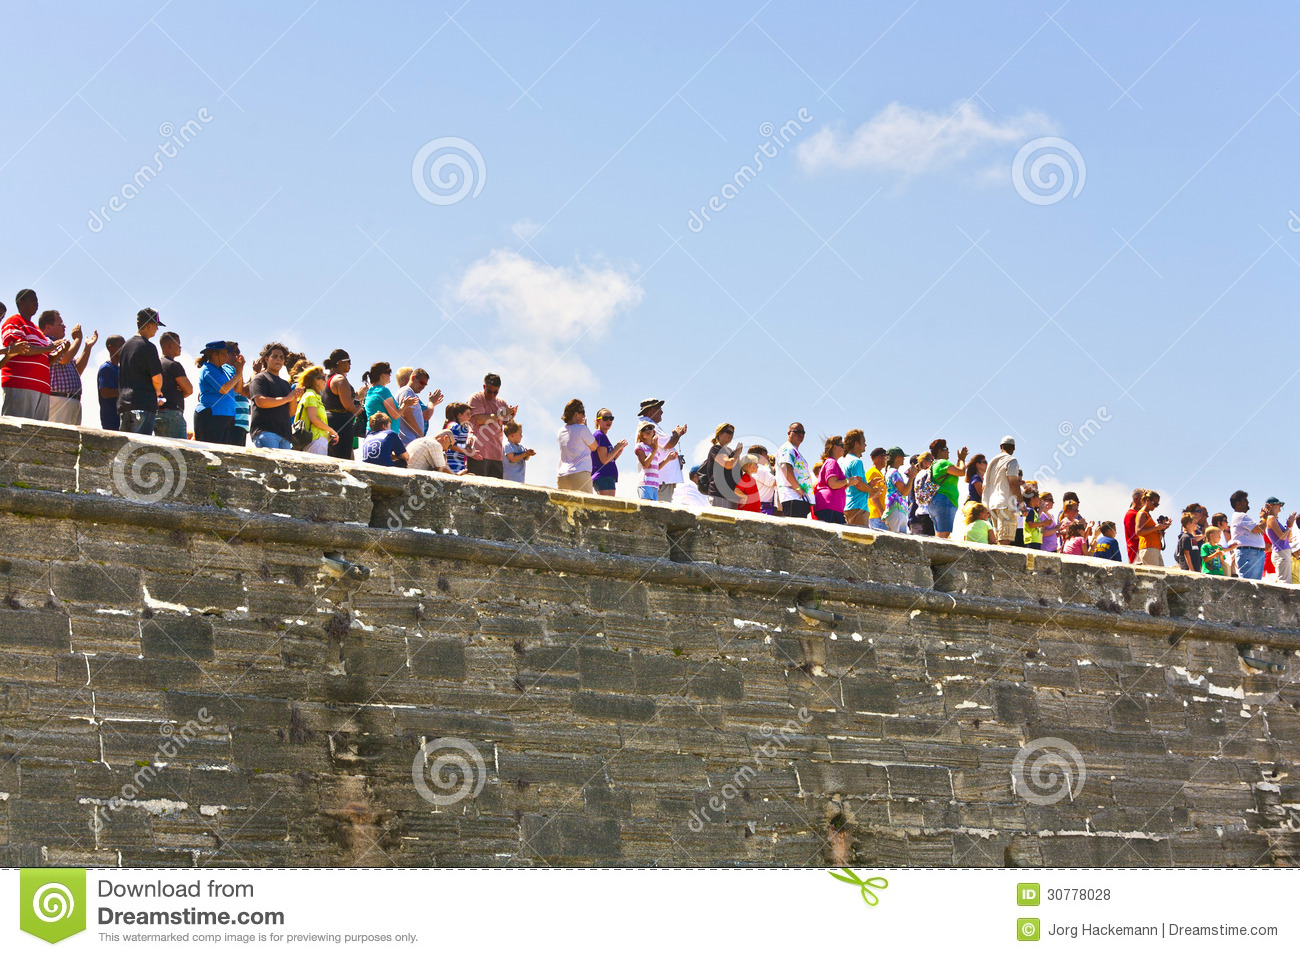 Visitors of the Historic weapon demonstration in Castillo de San Marcos in St. Augustine